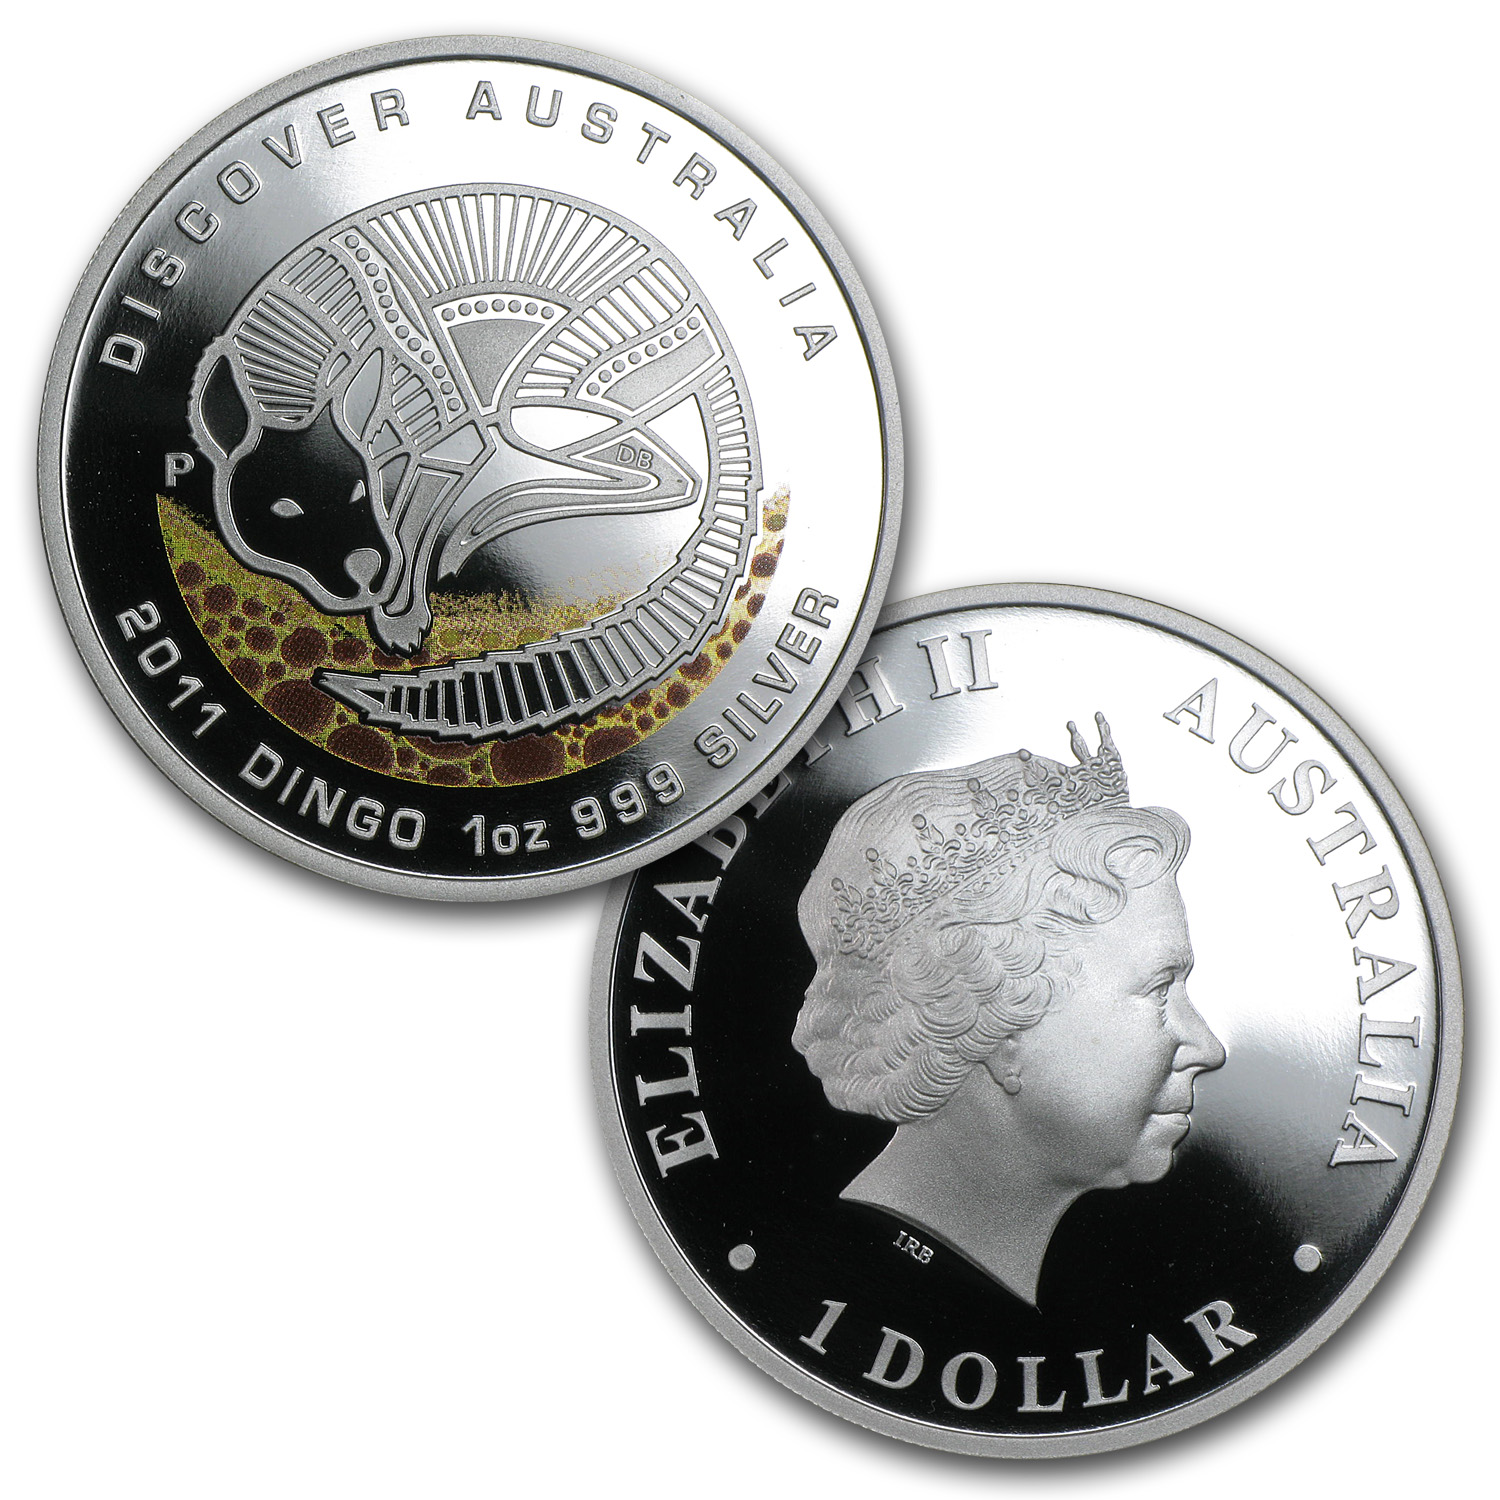 2011 5-Coin 1 oz Silver Discover Australia Dreaming Proof Set